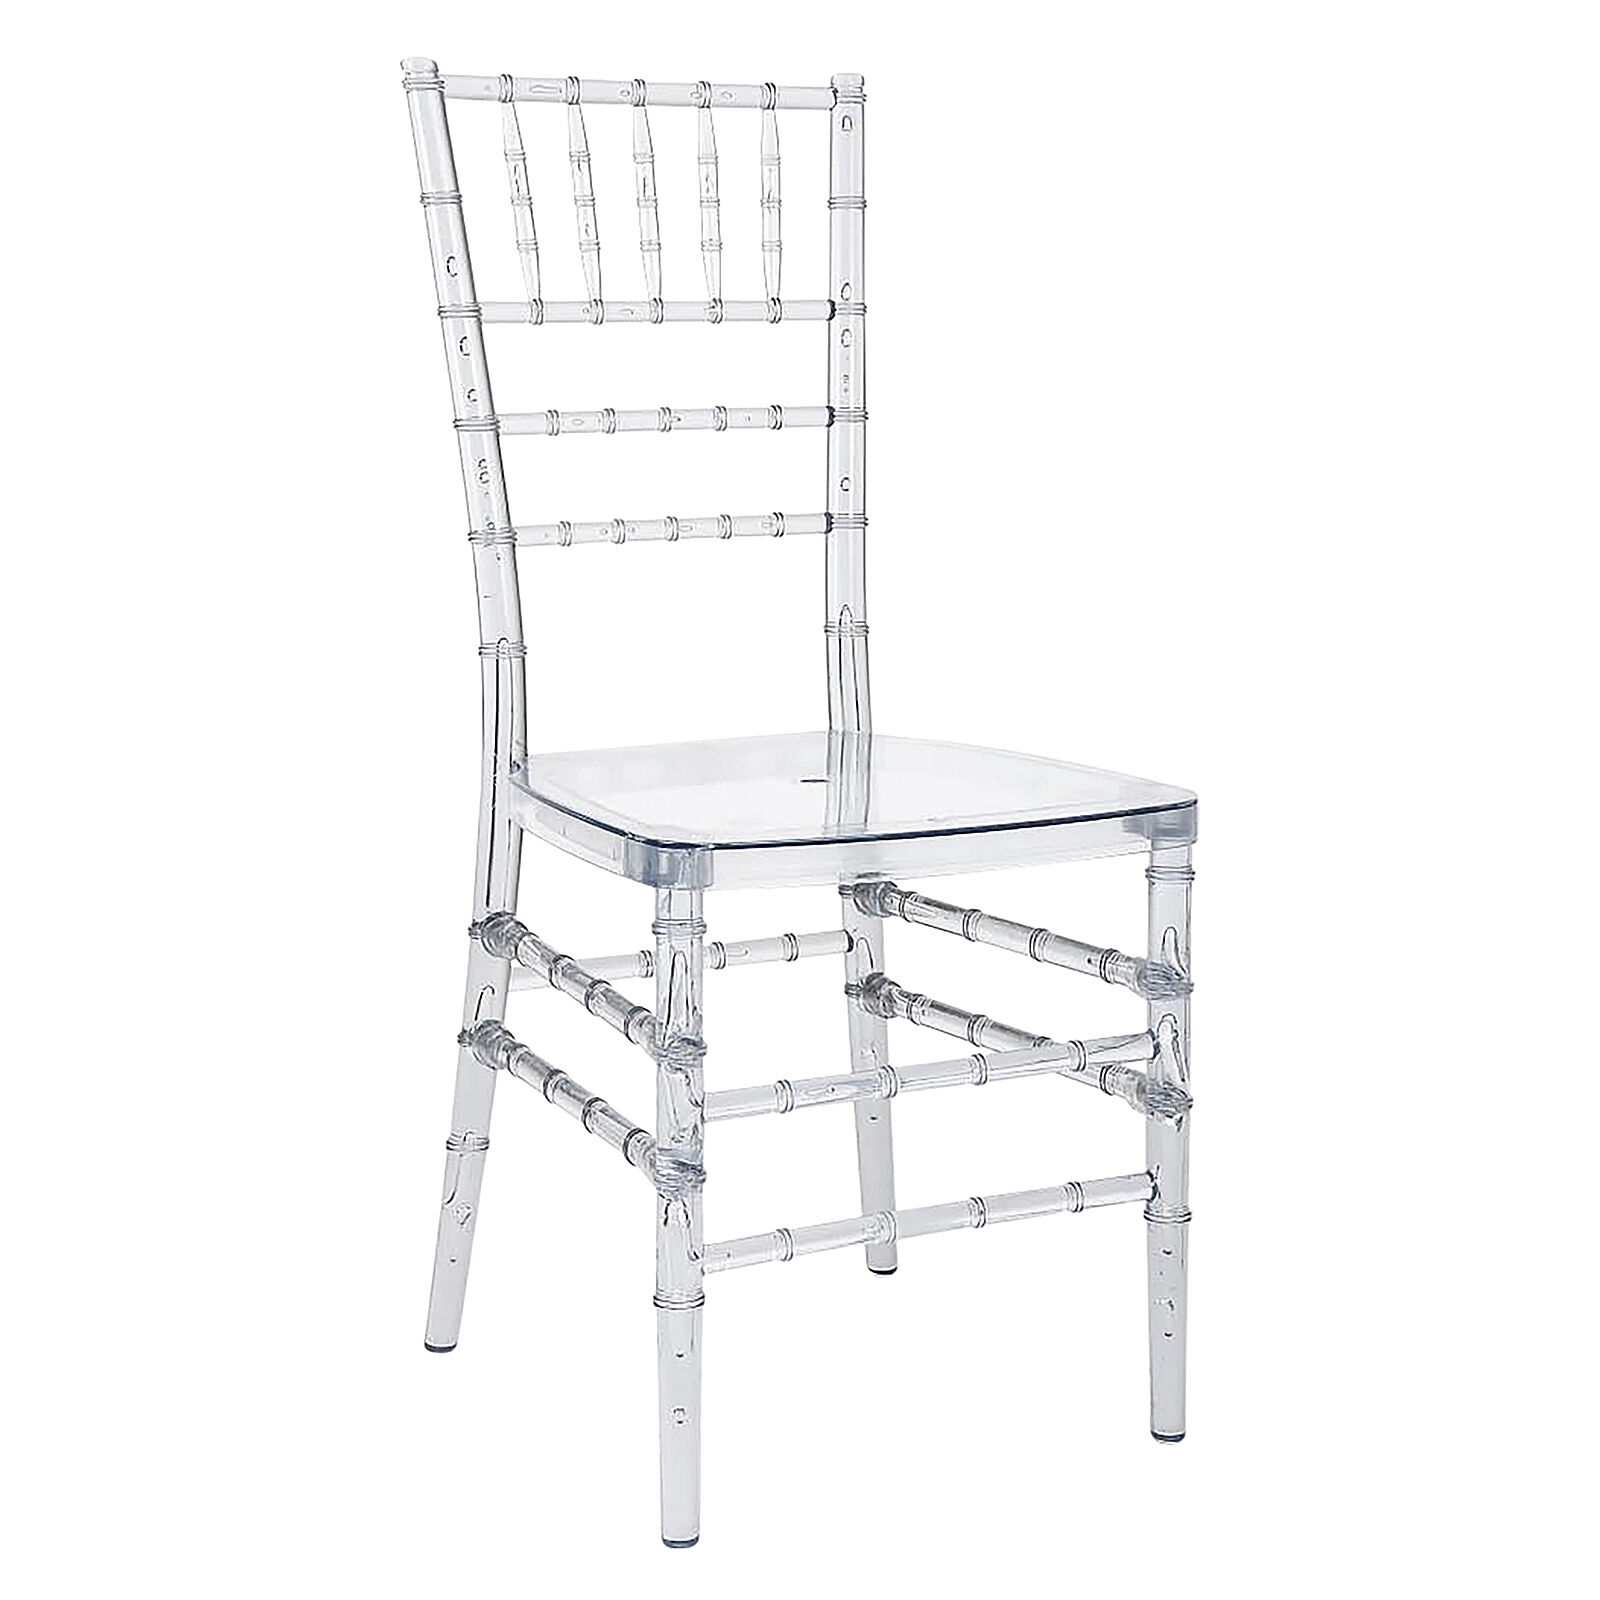 At Home Chairs Acrylic Chiavari Ghost Chair